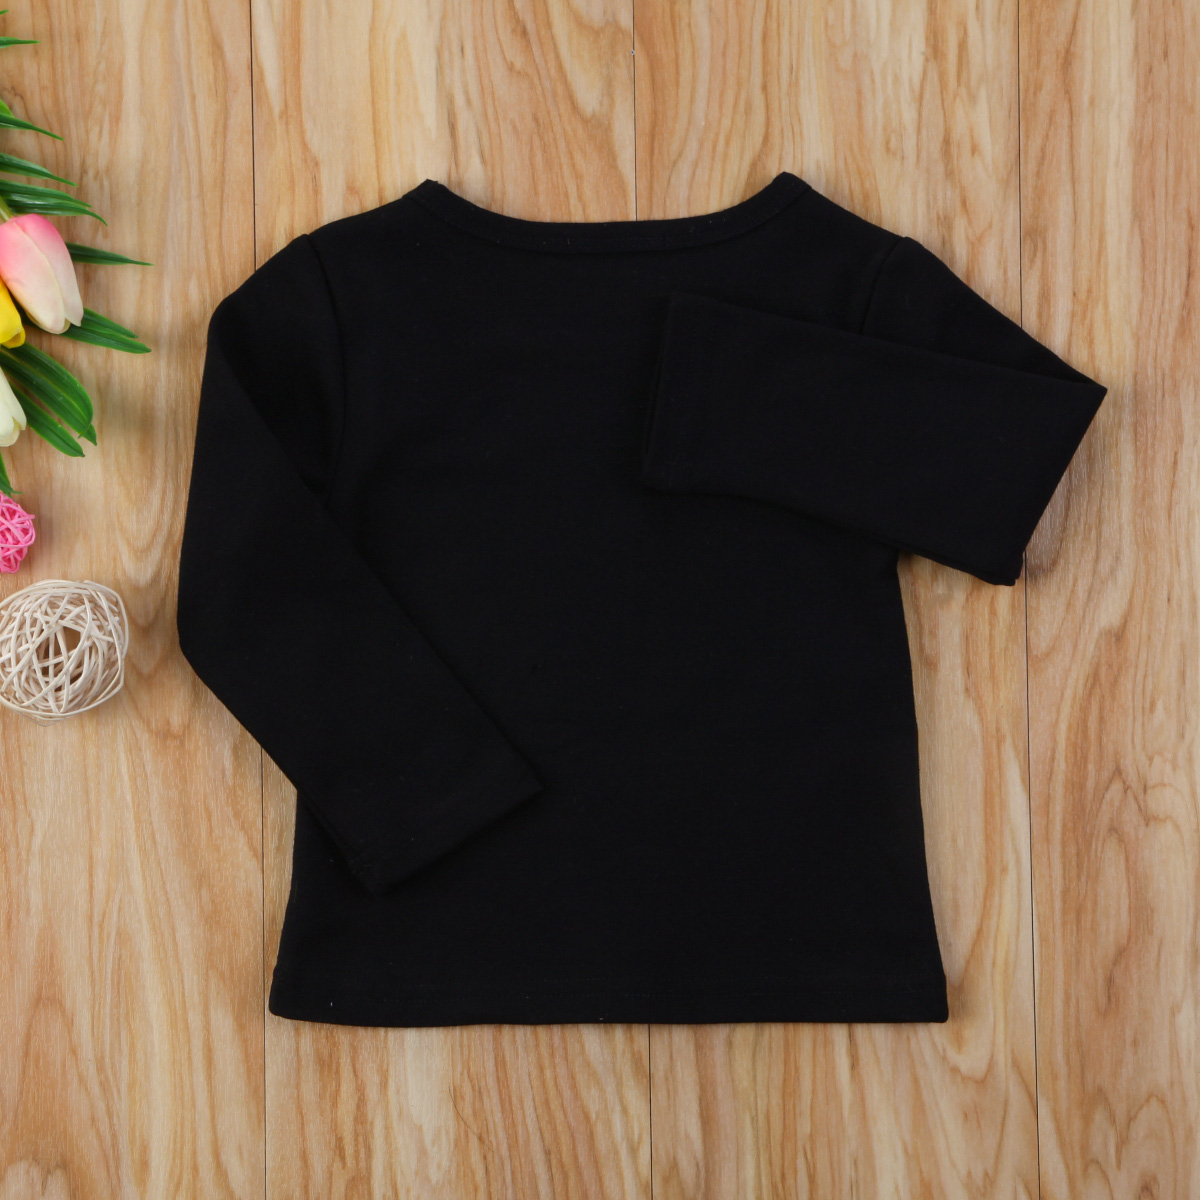 Autumn Cotton Newborn Infant Kids Baby Boys Girls Clothes Solid Cotton Soft Clothing Long Sleeves T-shirt Tops 10